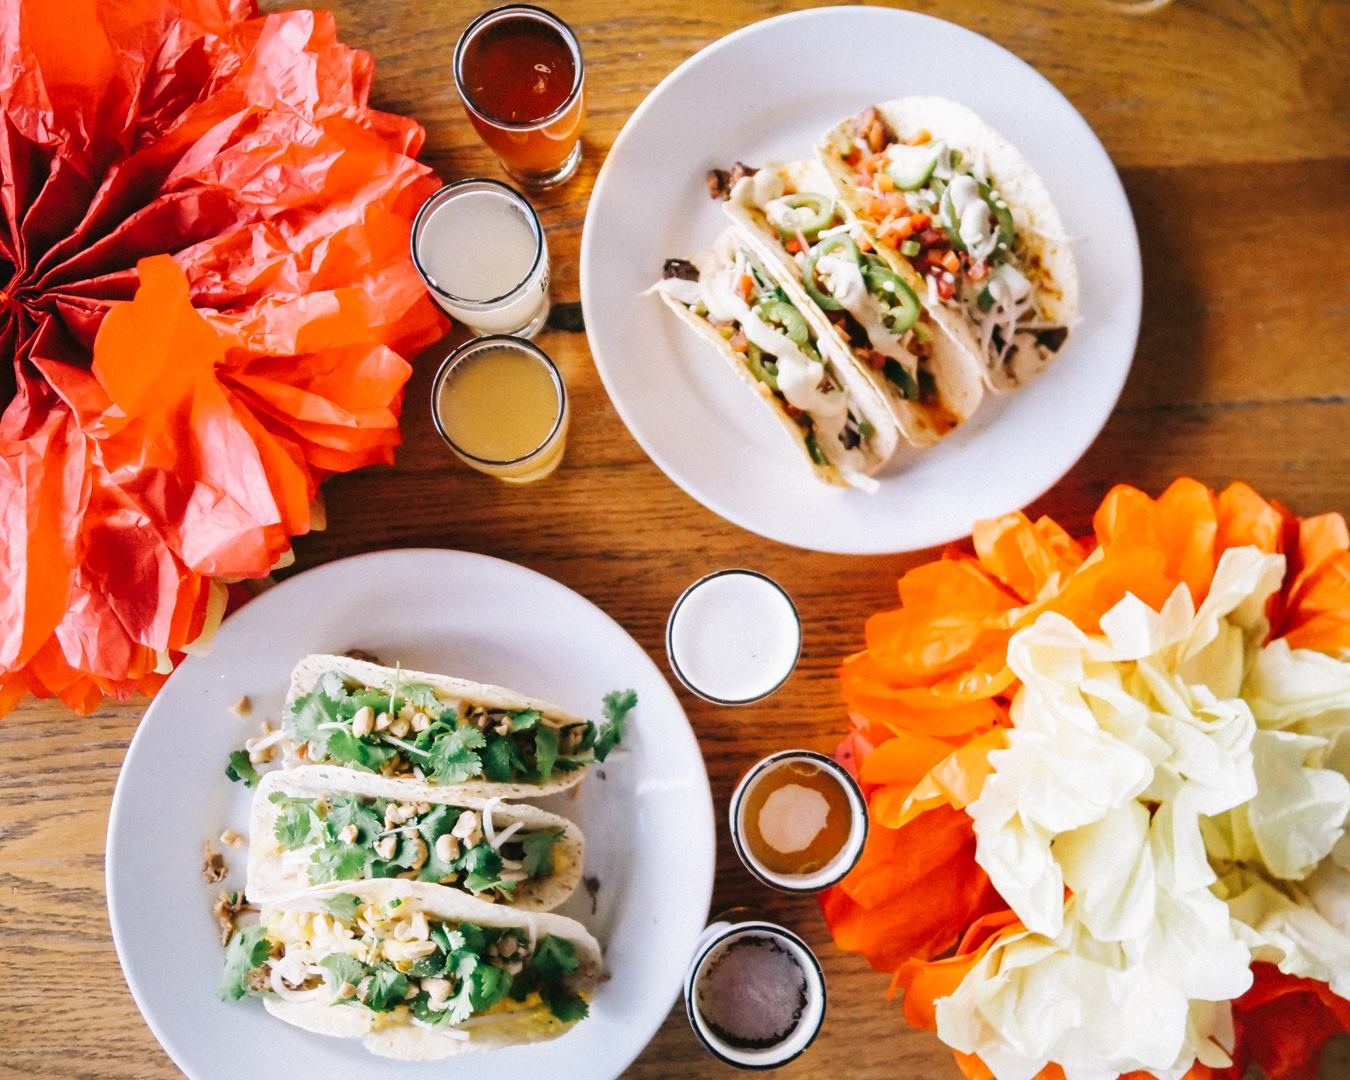 10 Barrel Brewing celebrates Cinco de Mayo with beer and food pairings. (image courtesy of 10 Barrel Brewing)